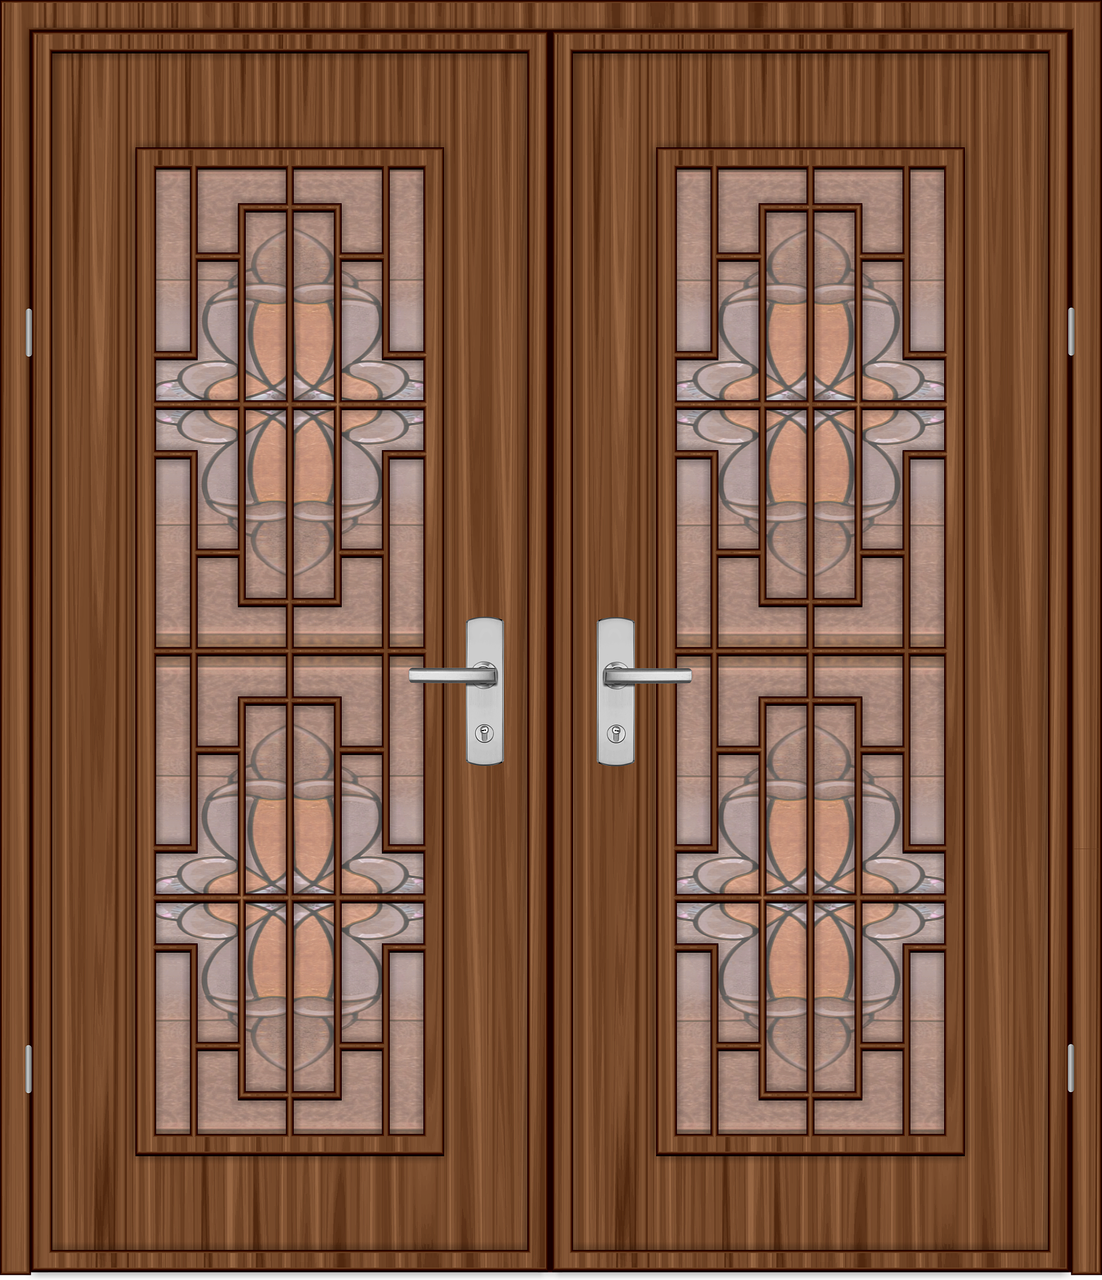 Wood doors with intricate inlays